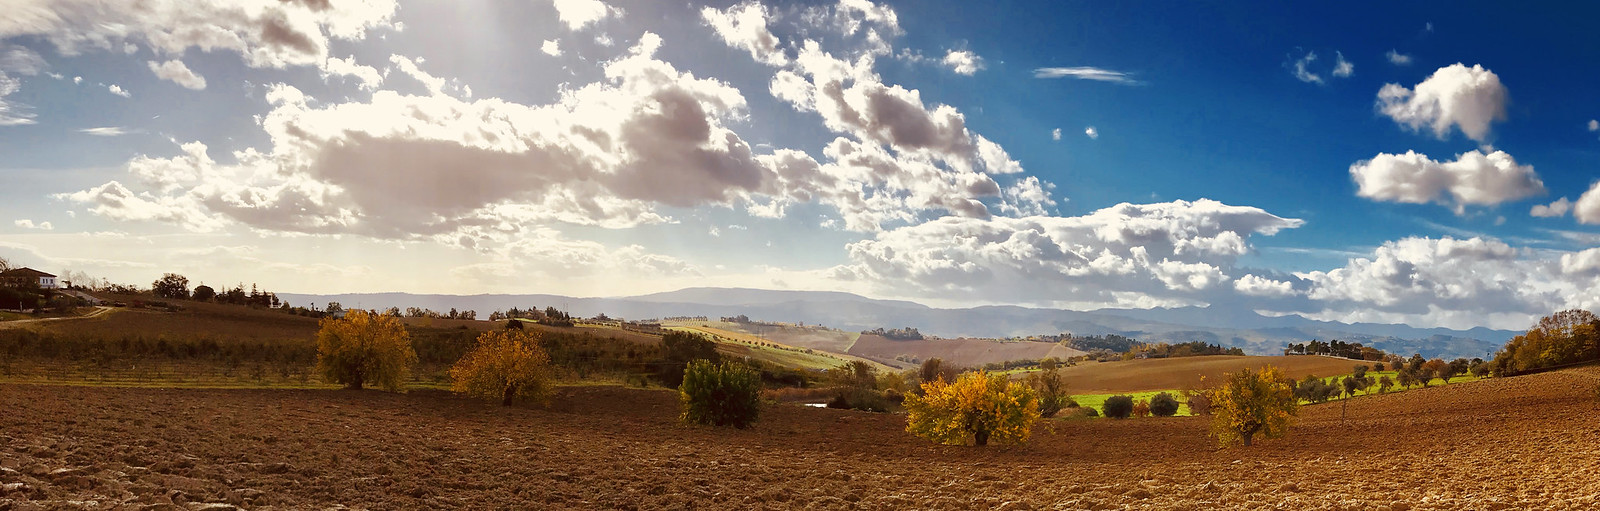 Autumn in the Marche - The most beautiful region of Italy